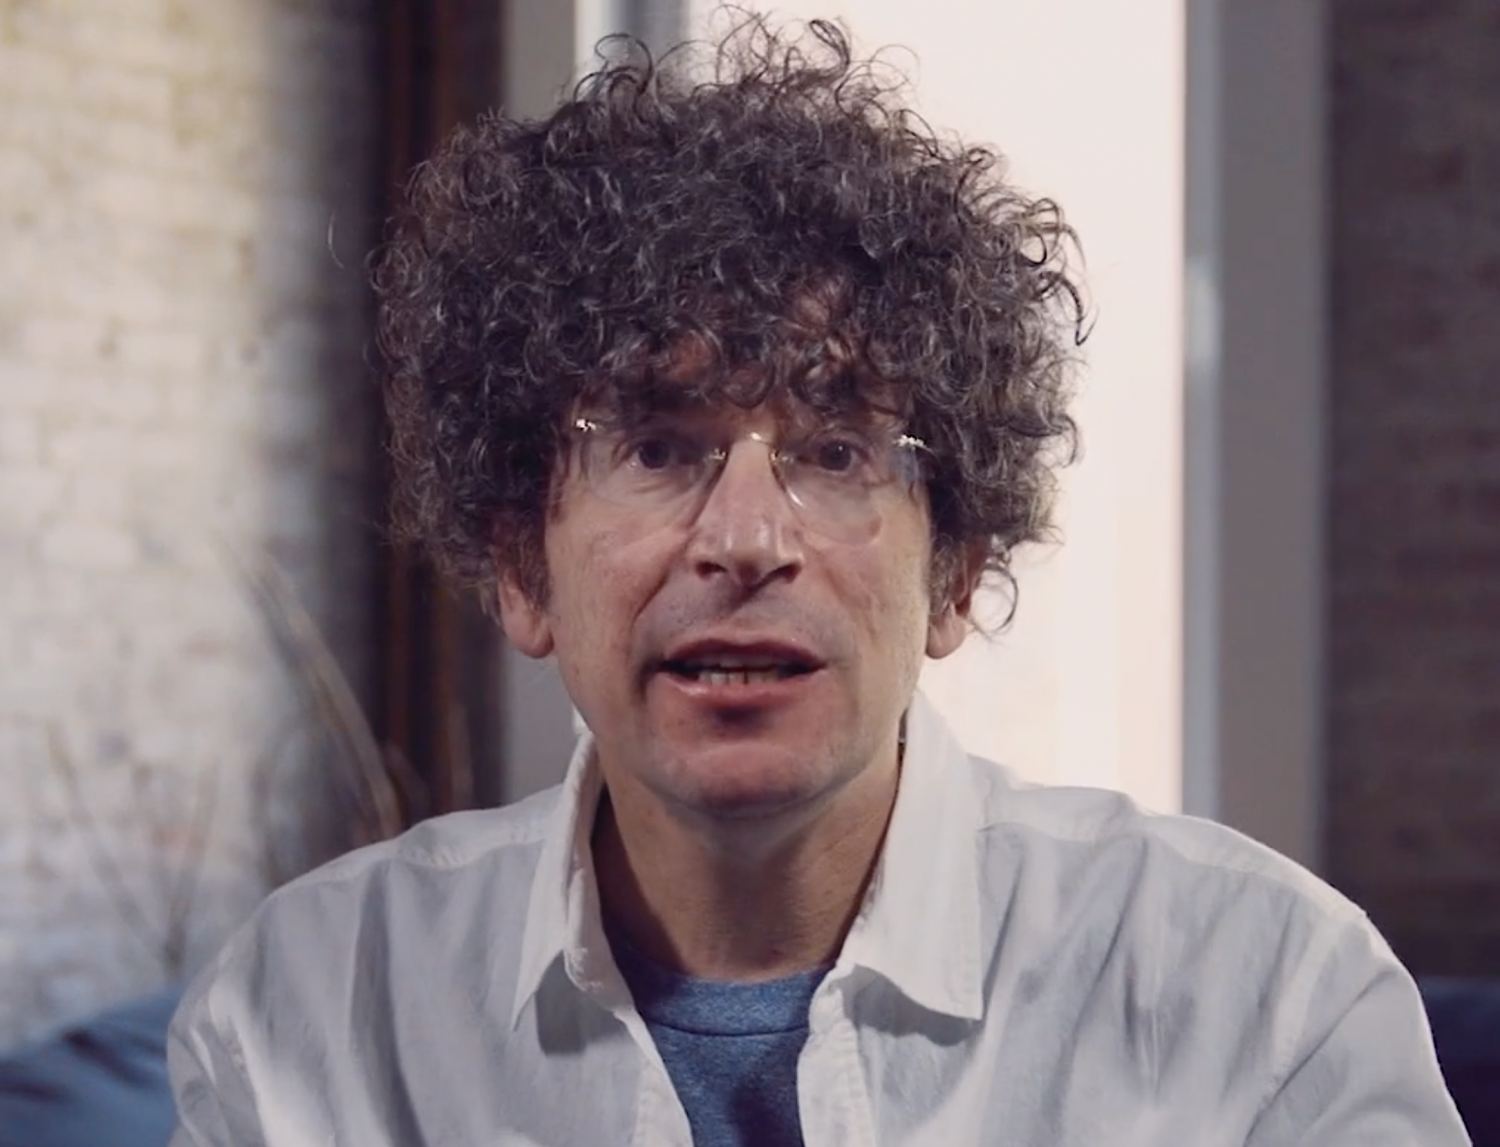 james altucher report cryptocurrency